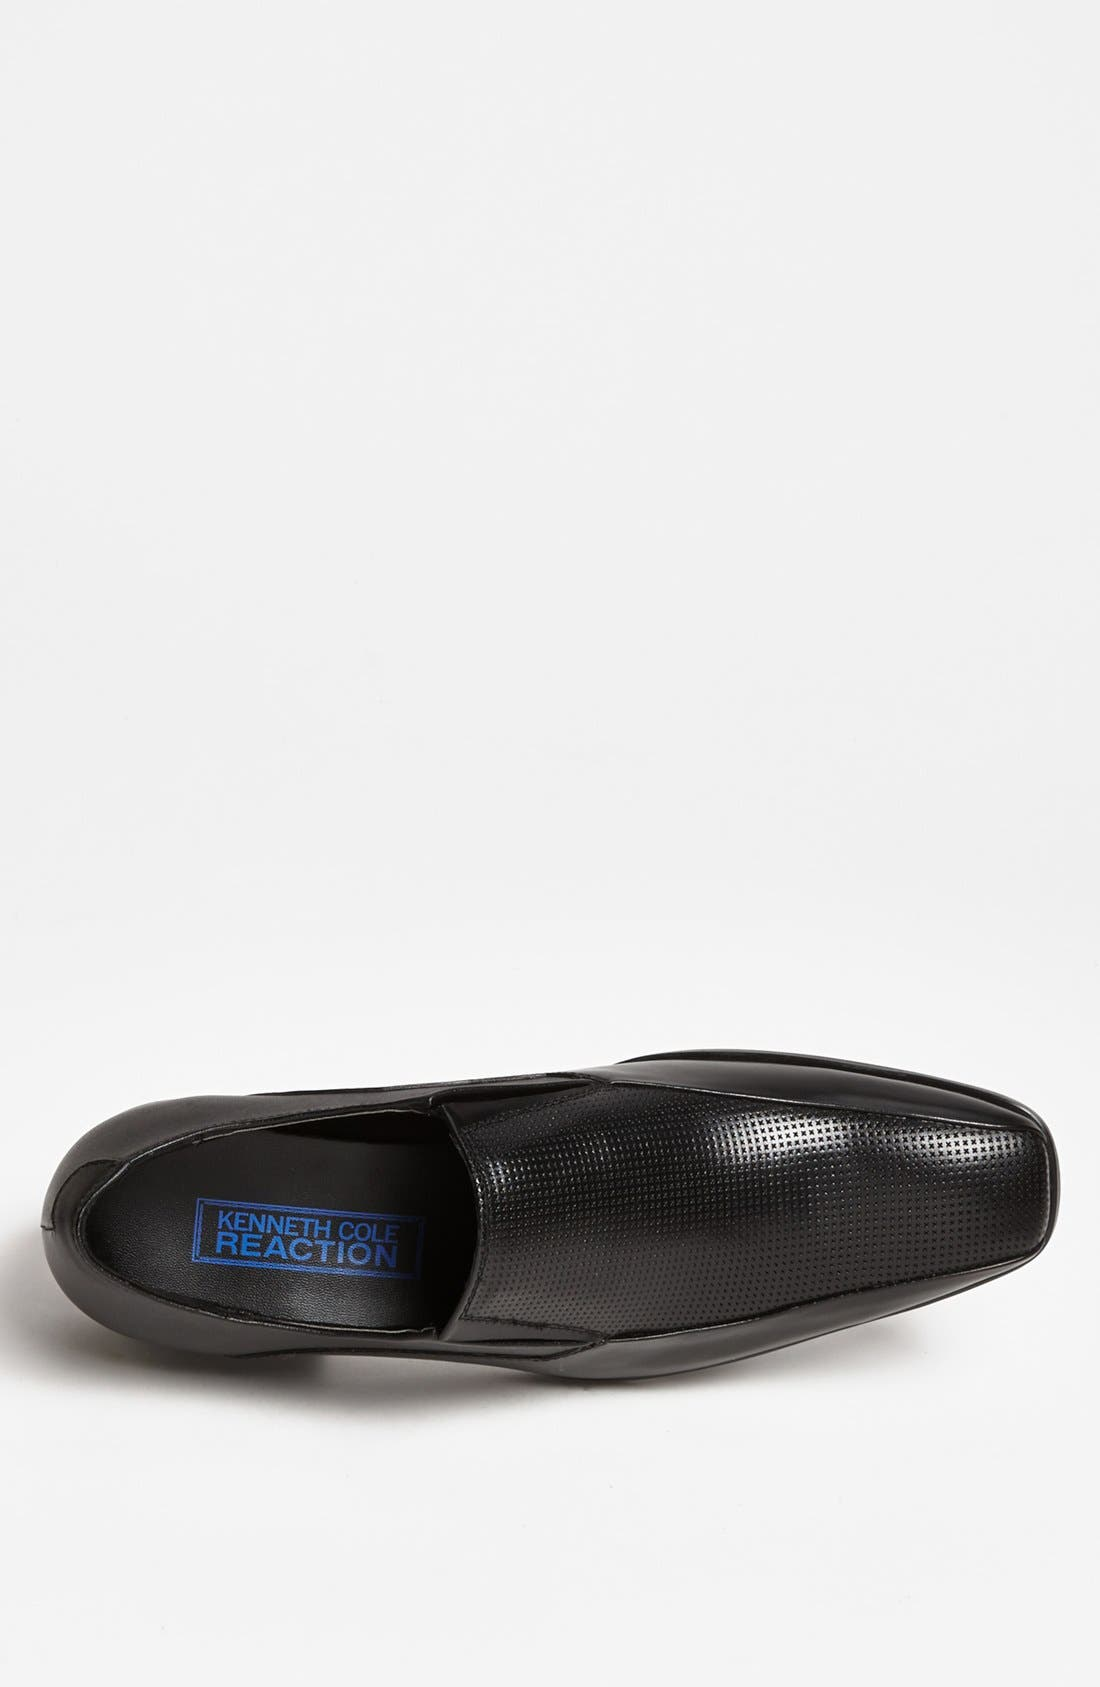 Alternate Image 3  - Kenneth Cole Reaction 'The Jig is Up' Venetian Loafer